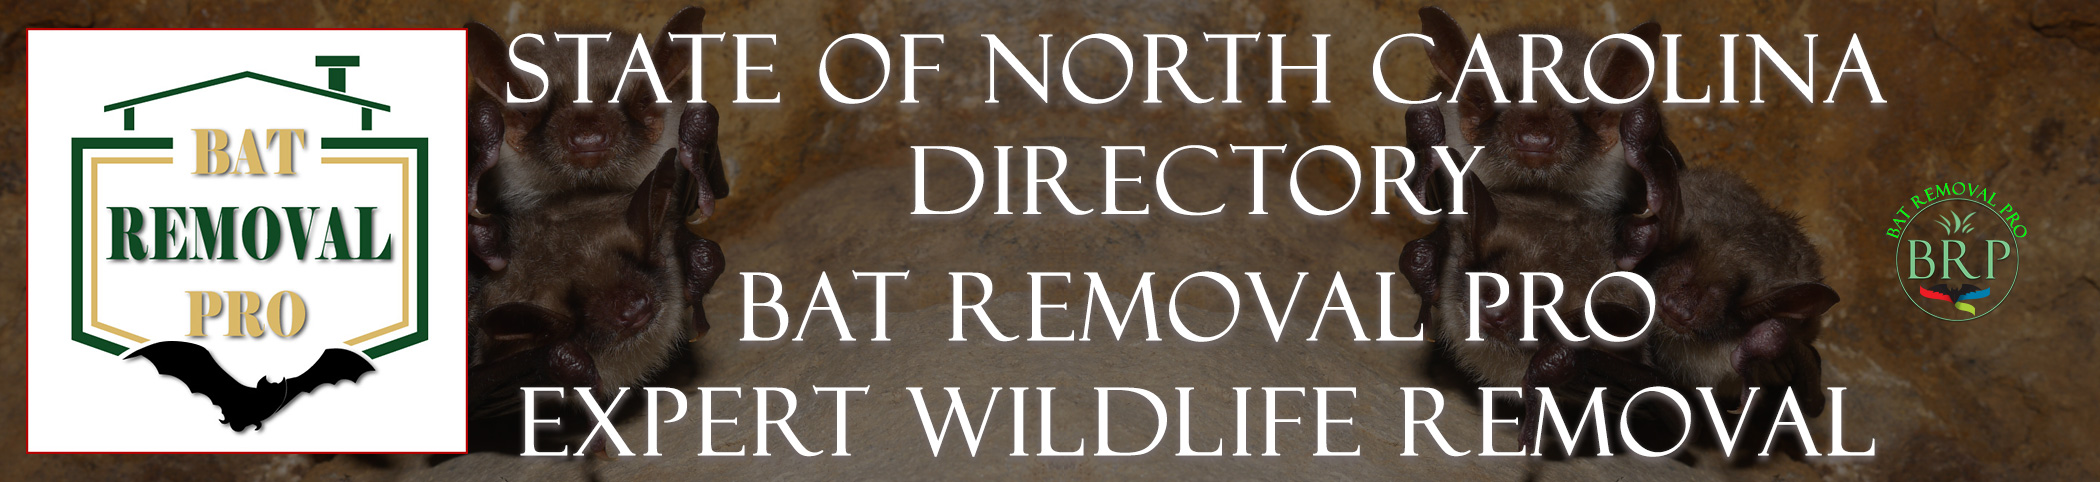 NORTH-CAROLINA-bat-removal-at-bat-removal-pro-header-image